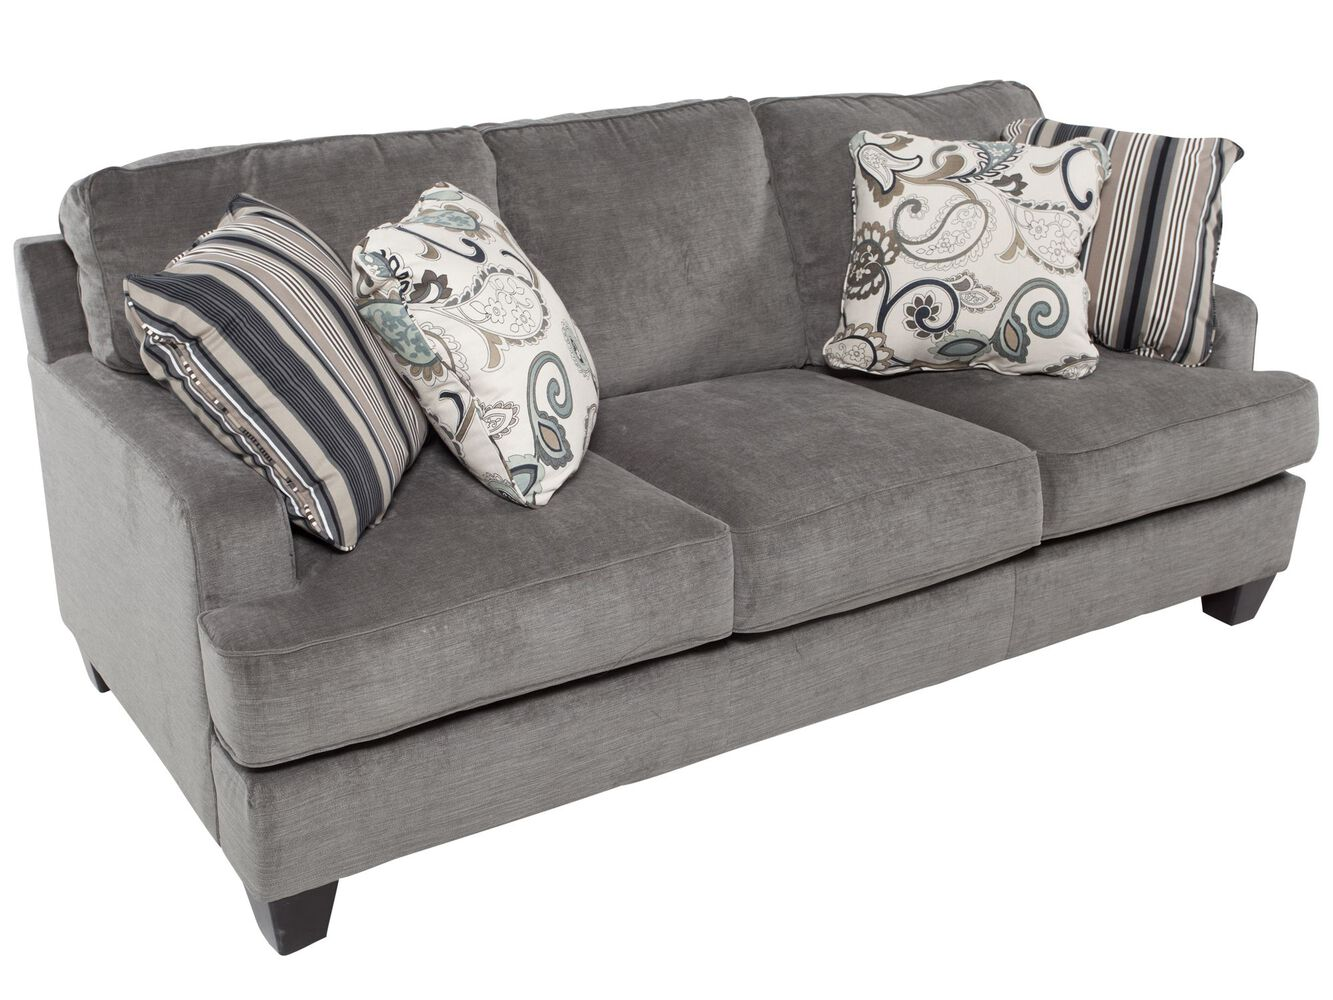 Low Profile Contemporary 61 Quot Sofa In Steel Blue Mathis